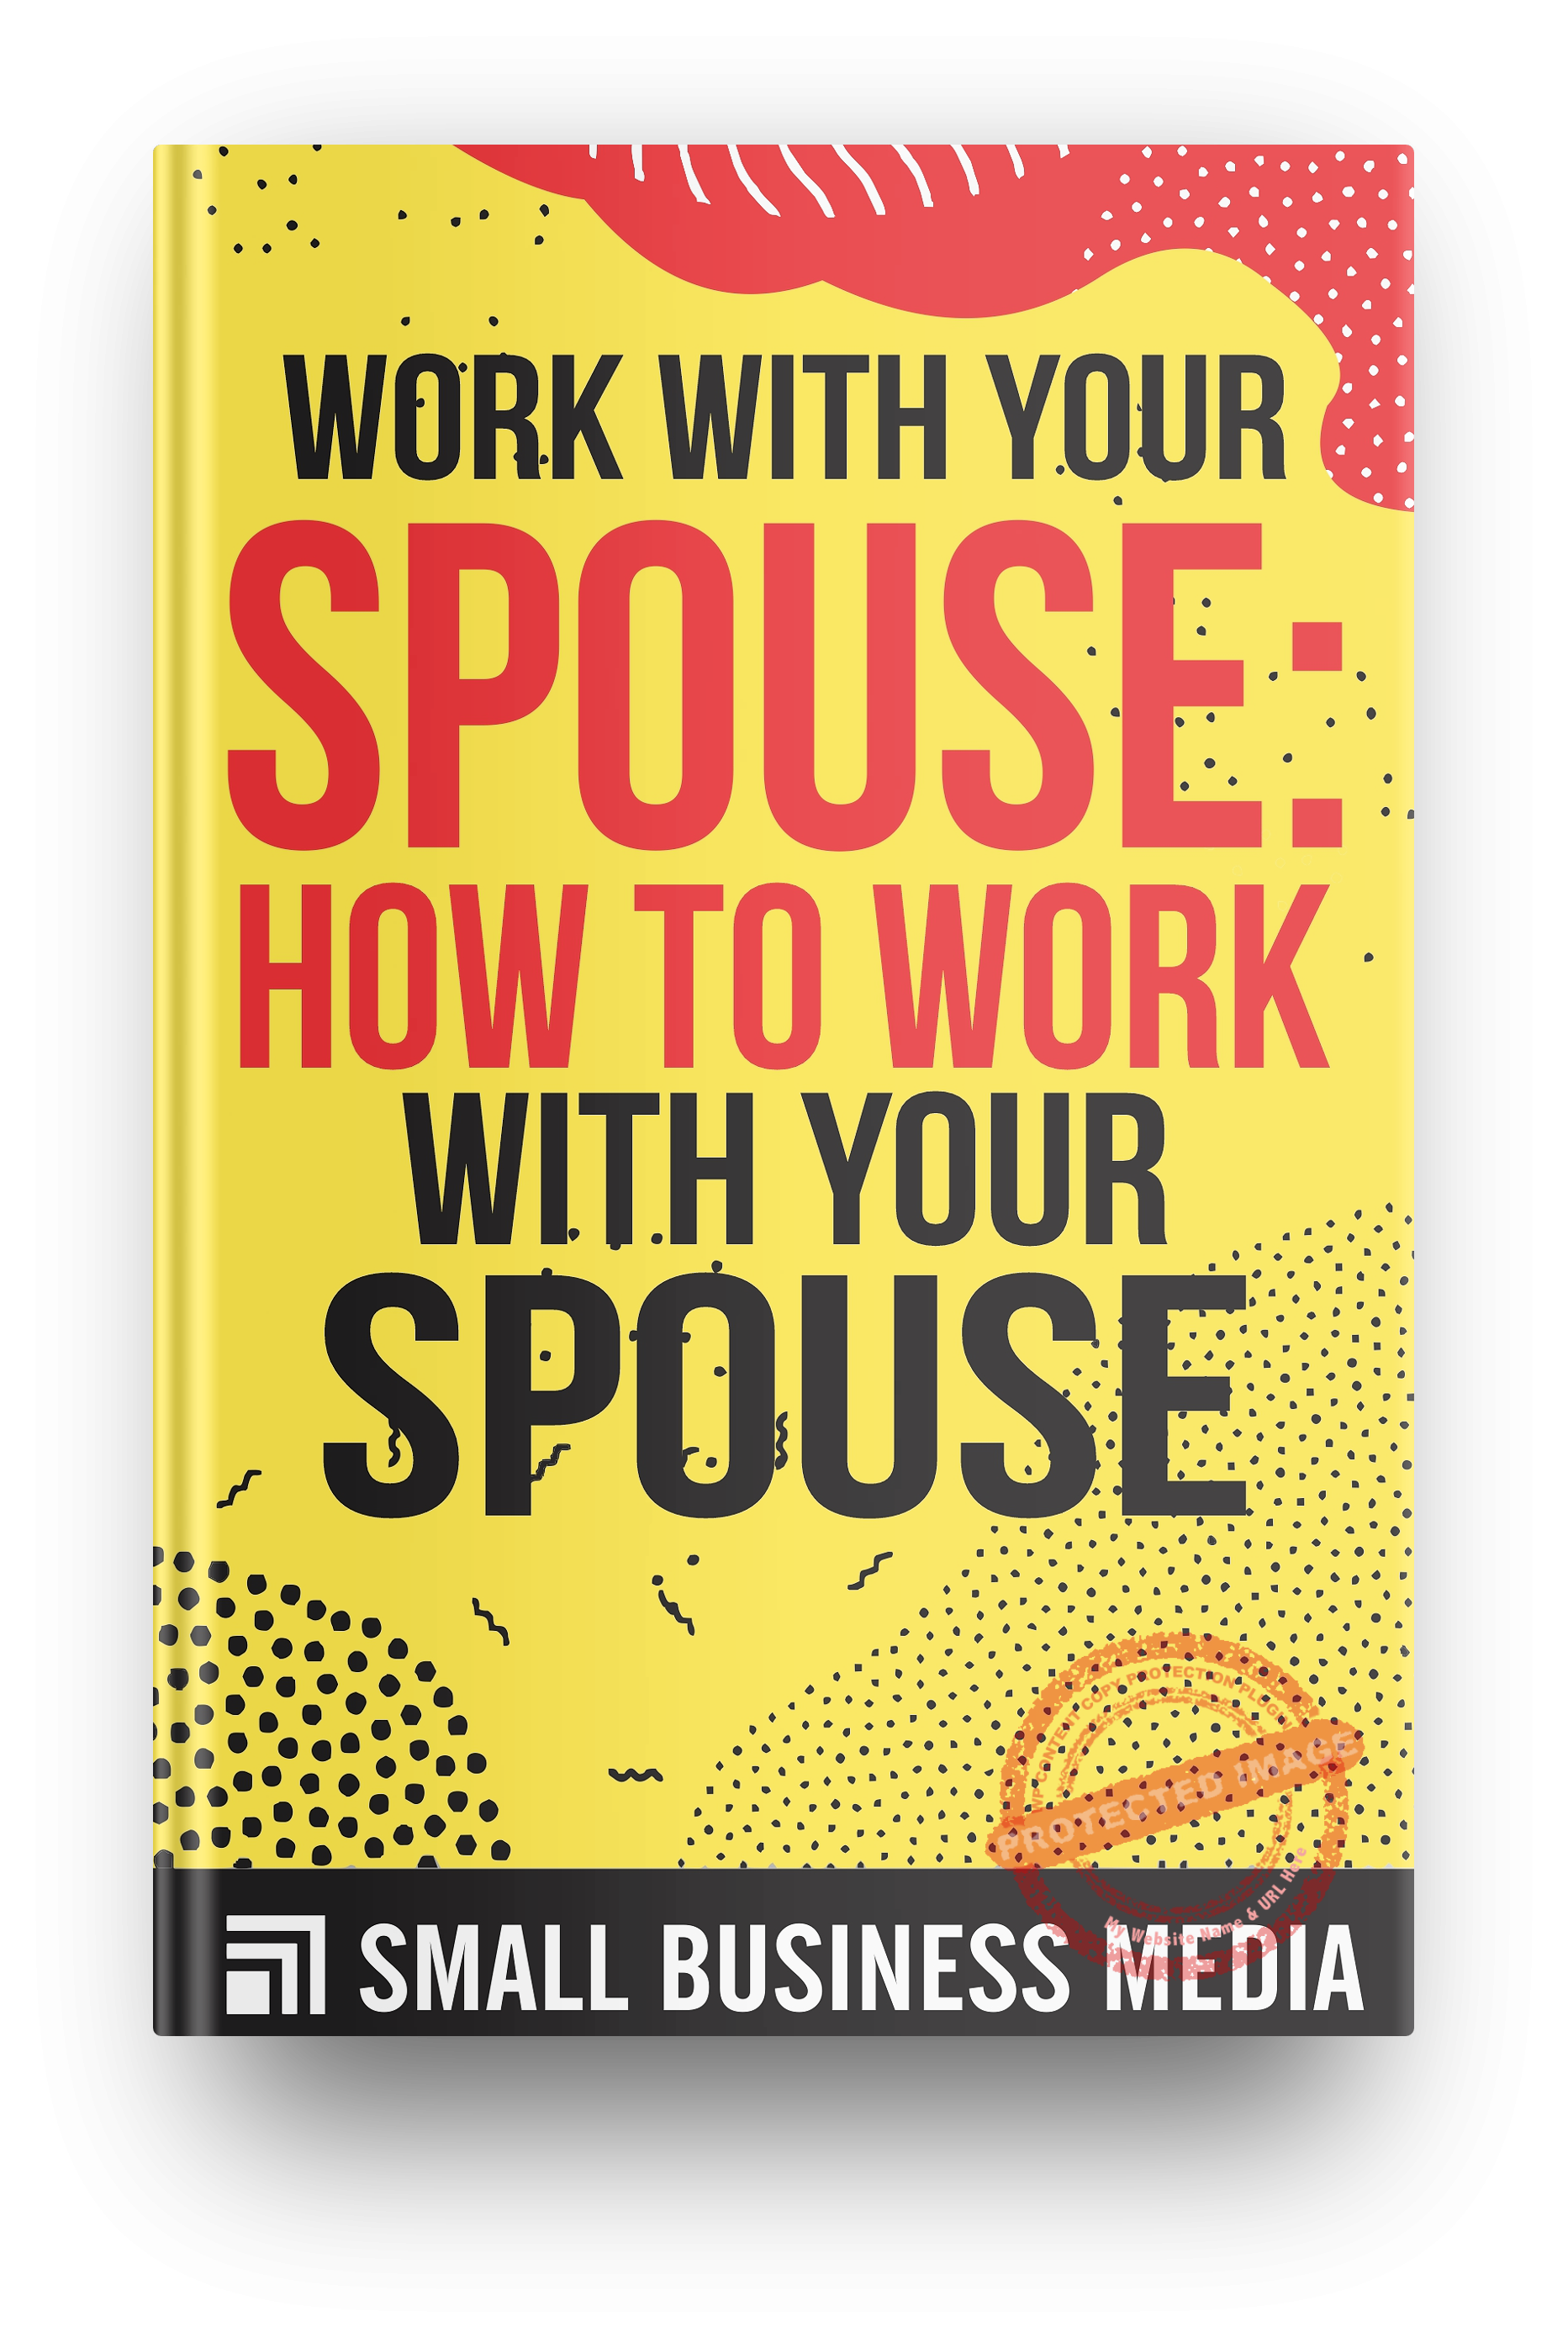 Work with your spouse: how to work with your spouse